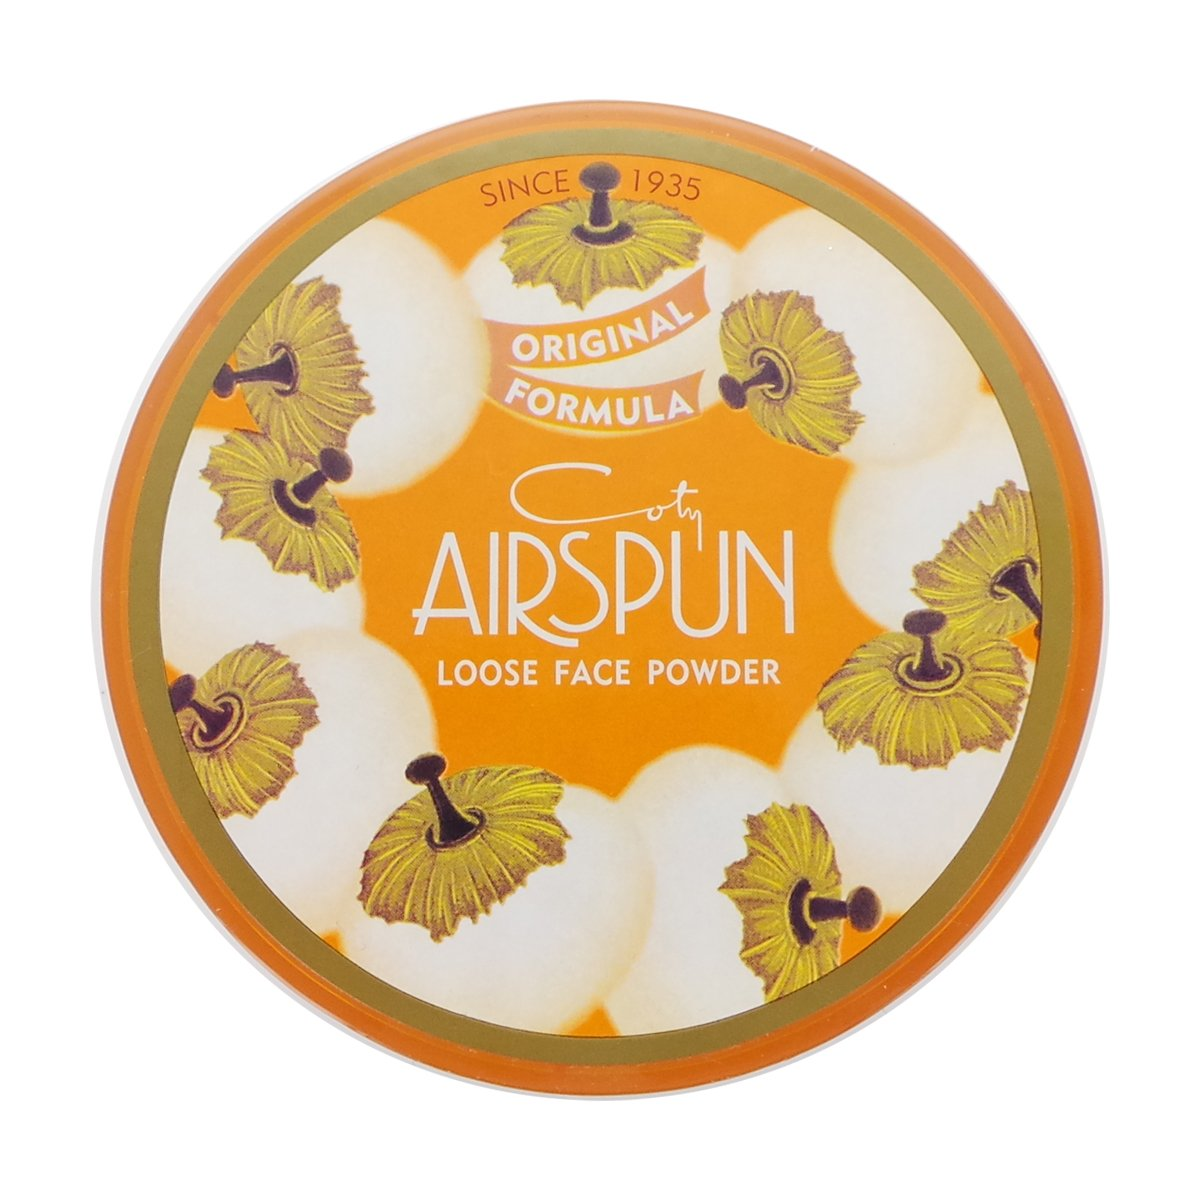 (6 Pack) COTY Airspun Loose Face Powder - Rosey Beige